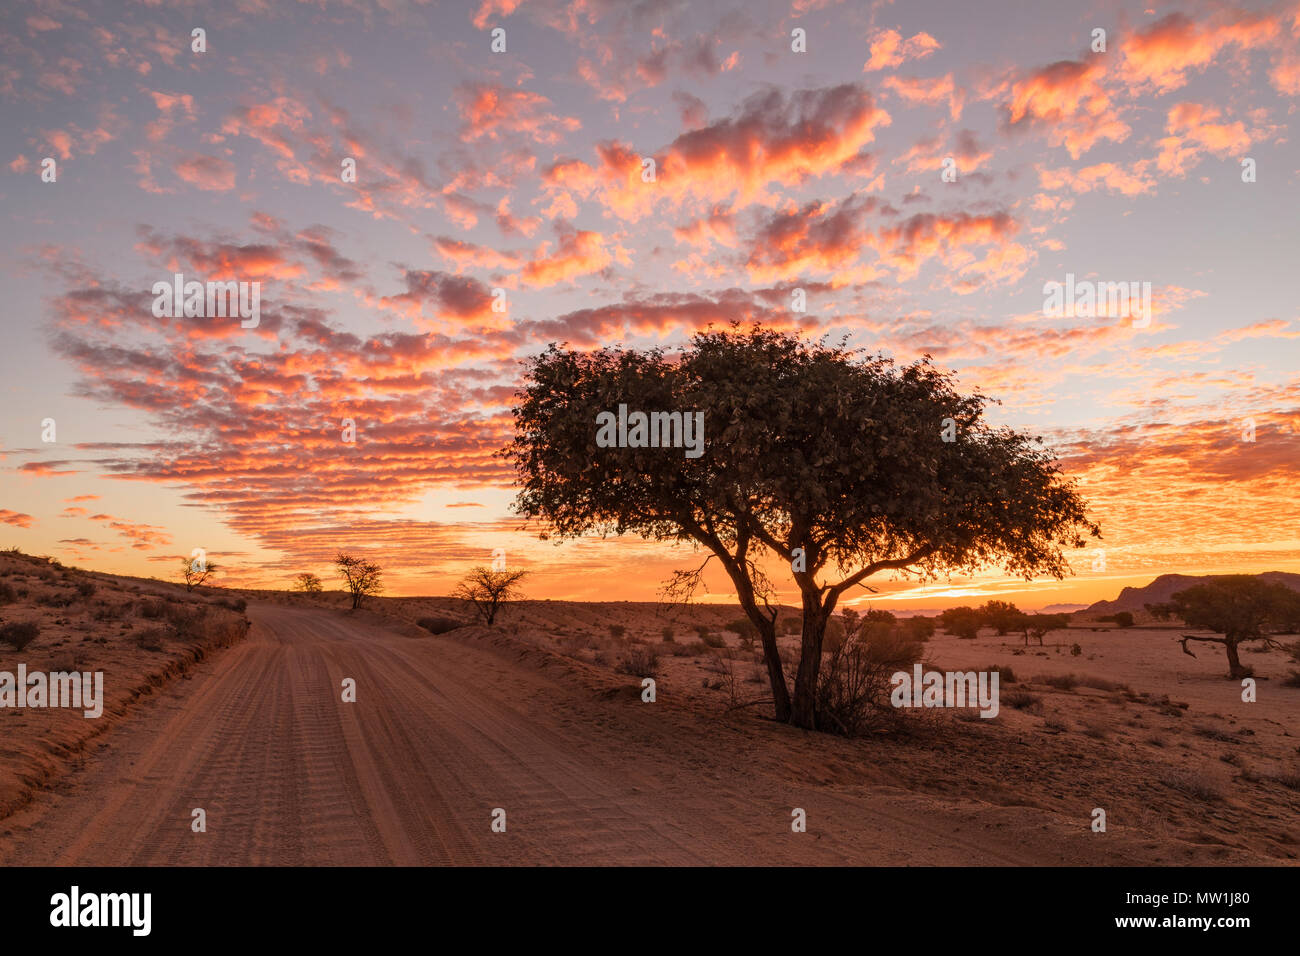 Aus, Namibie, Afrique du Sud Photo Stock